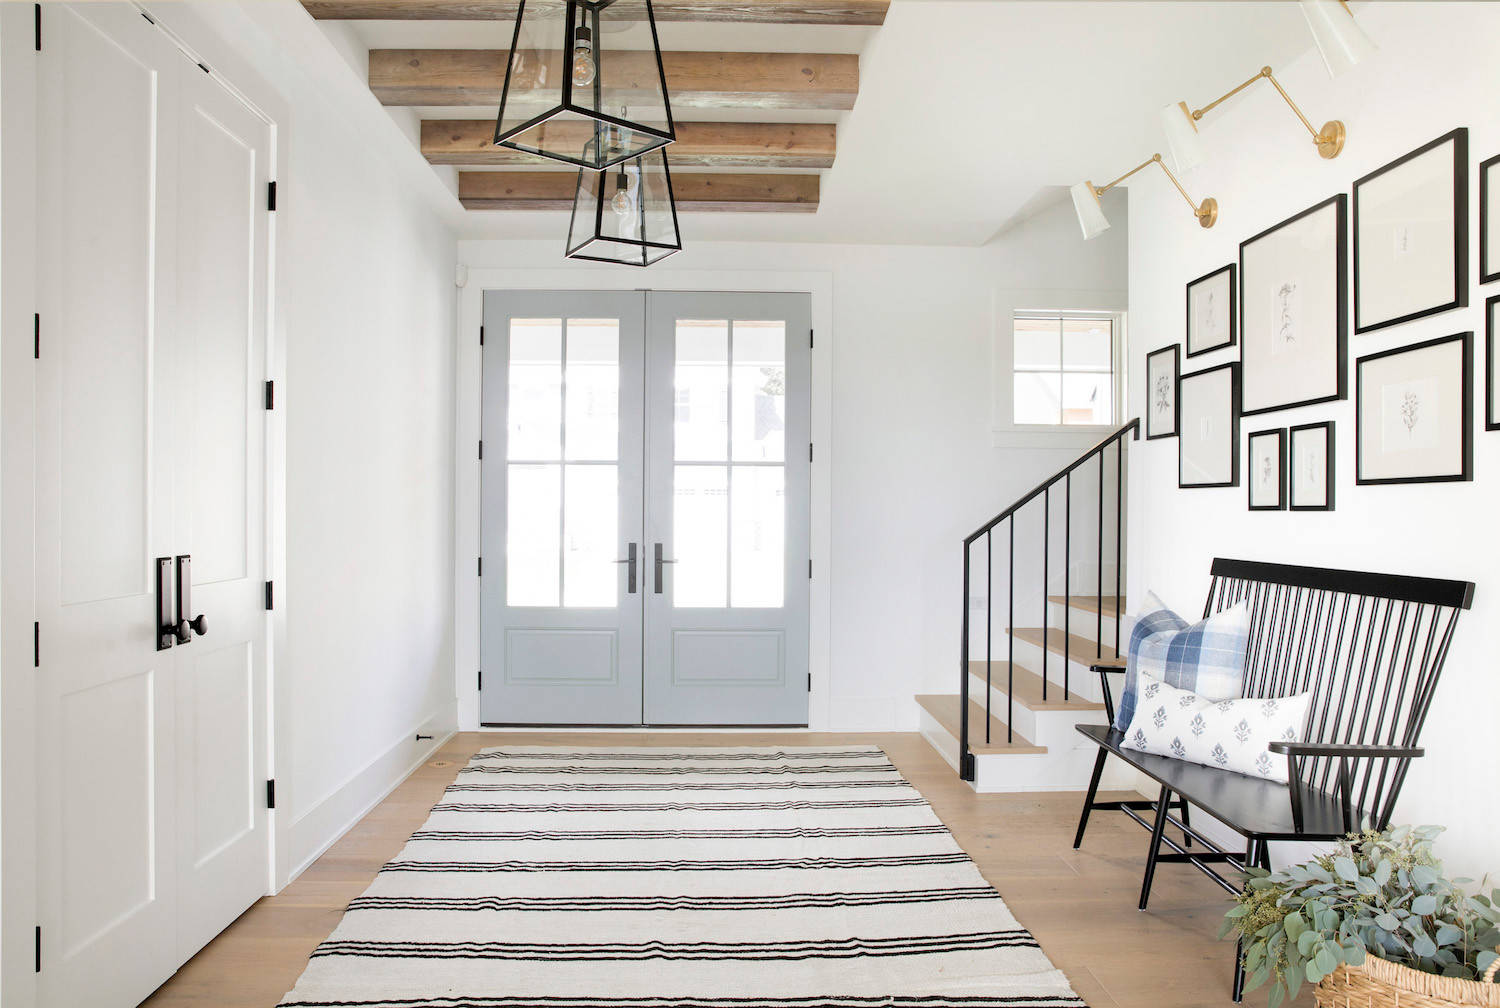 75 Beautiful Farmhouse Entryway Pictures Ideas December 2020 Houzz